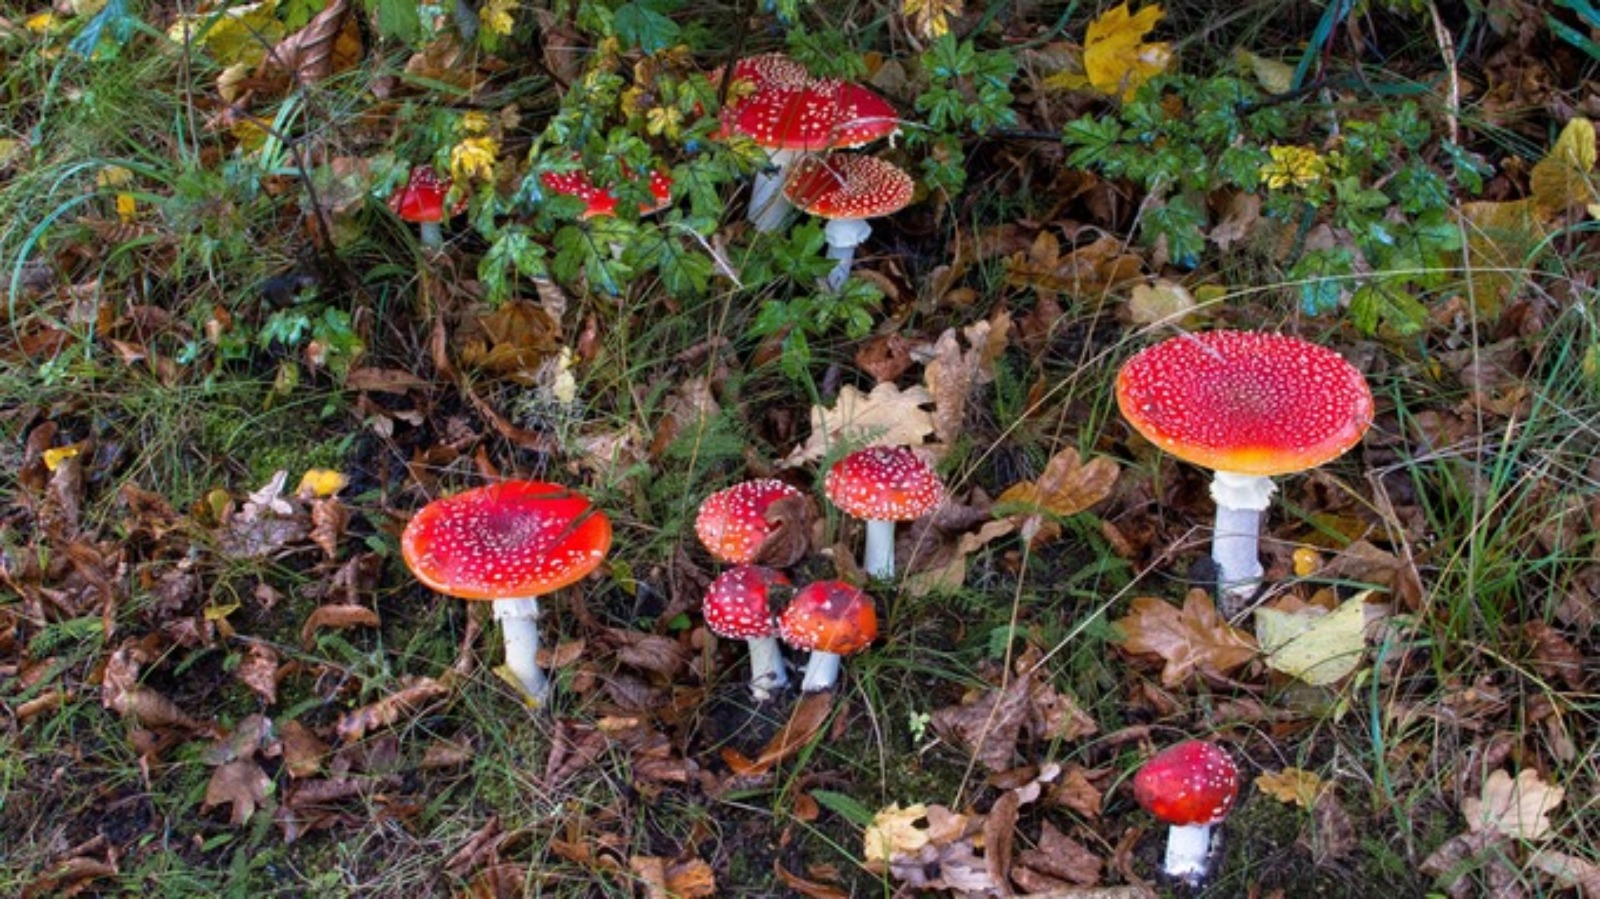 How High To Hang Paintings Magic Mushrooms Drug Could Help Treat Depression Itv News